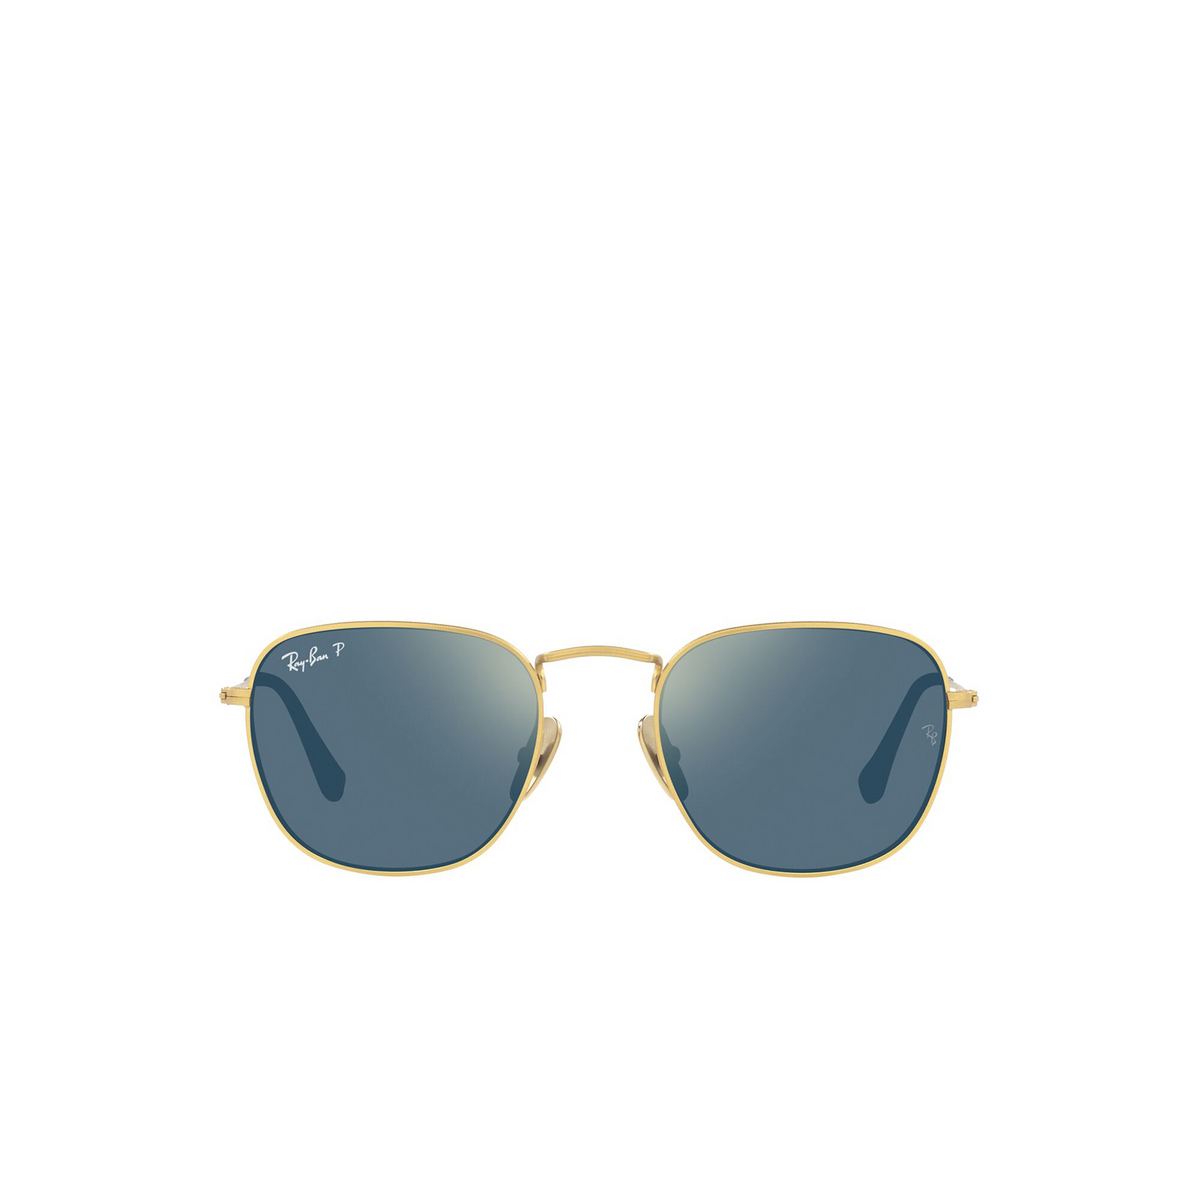 Ray-Ban® Square Sunglasses: Frank RB8157 color Demigloss Brushed Gold 9217T0 - front view.